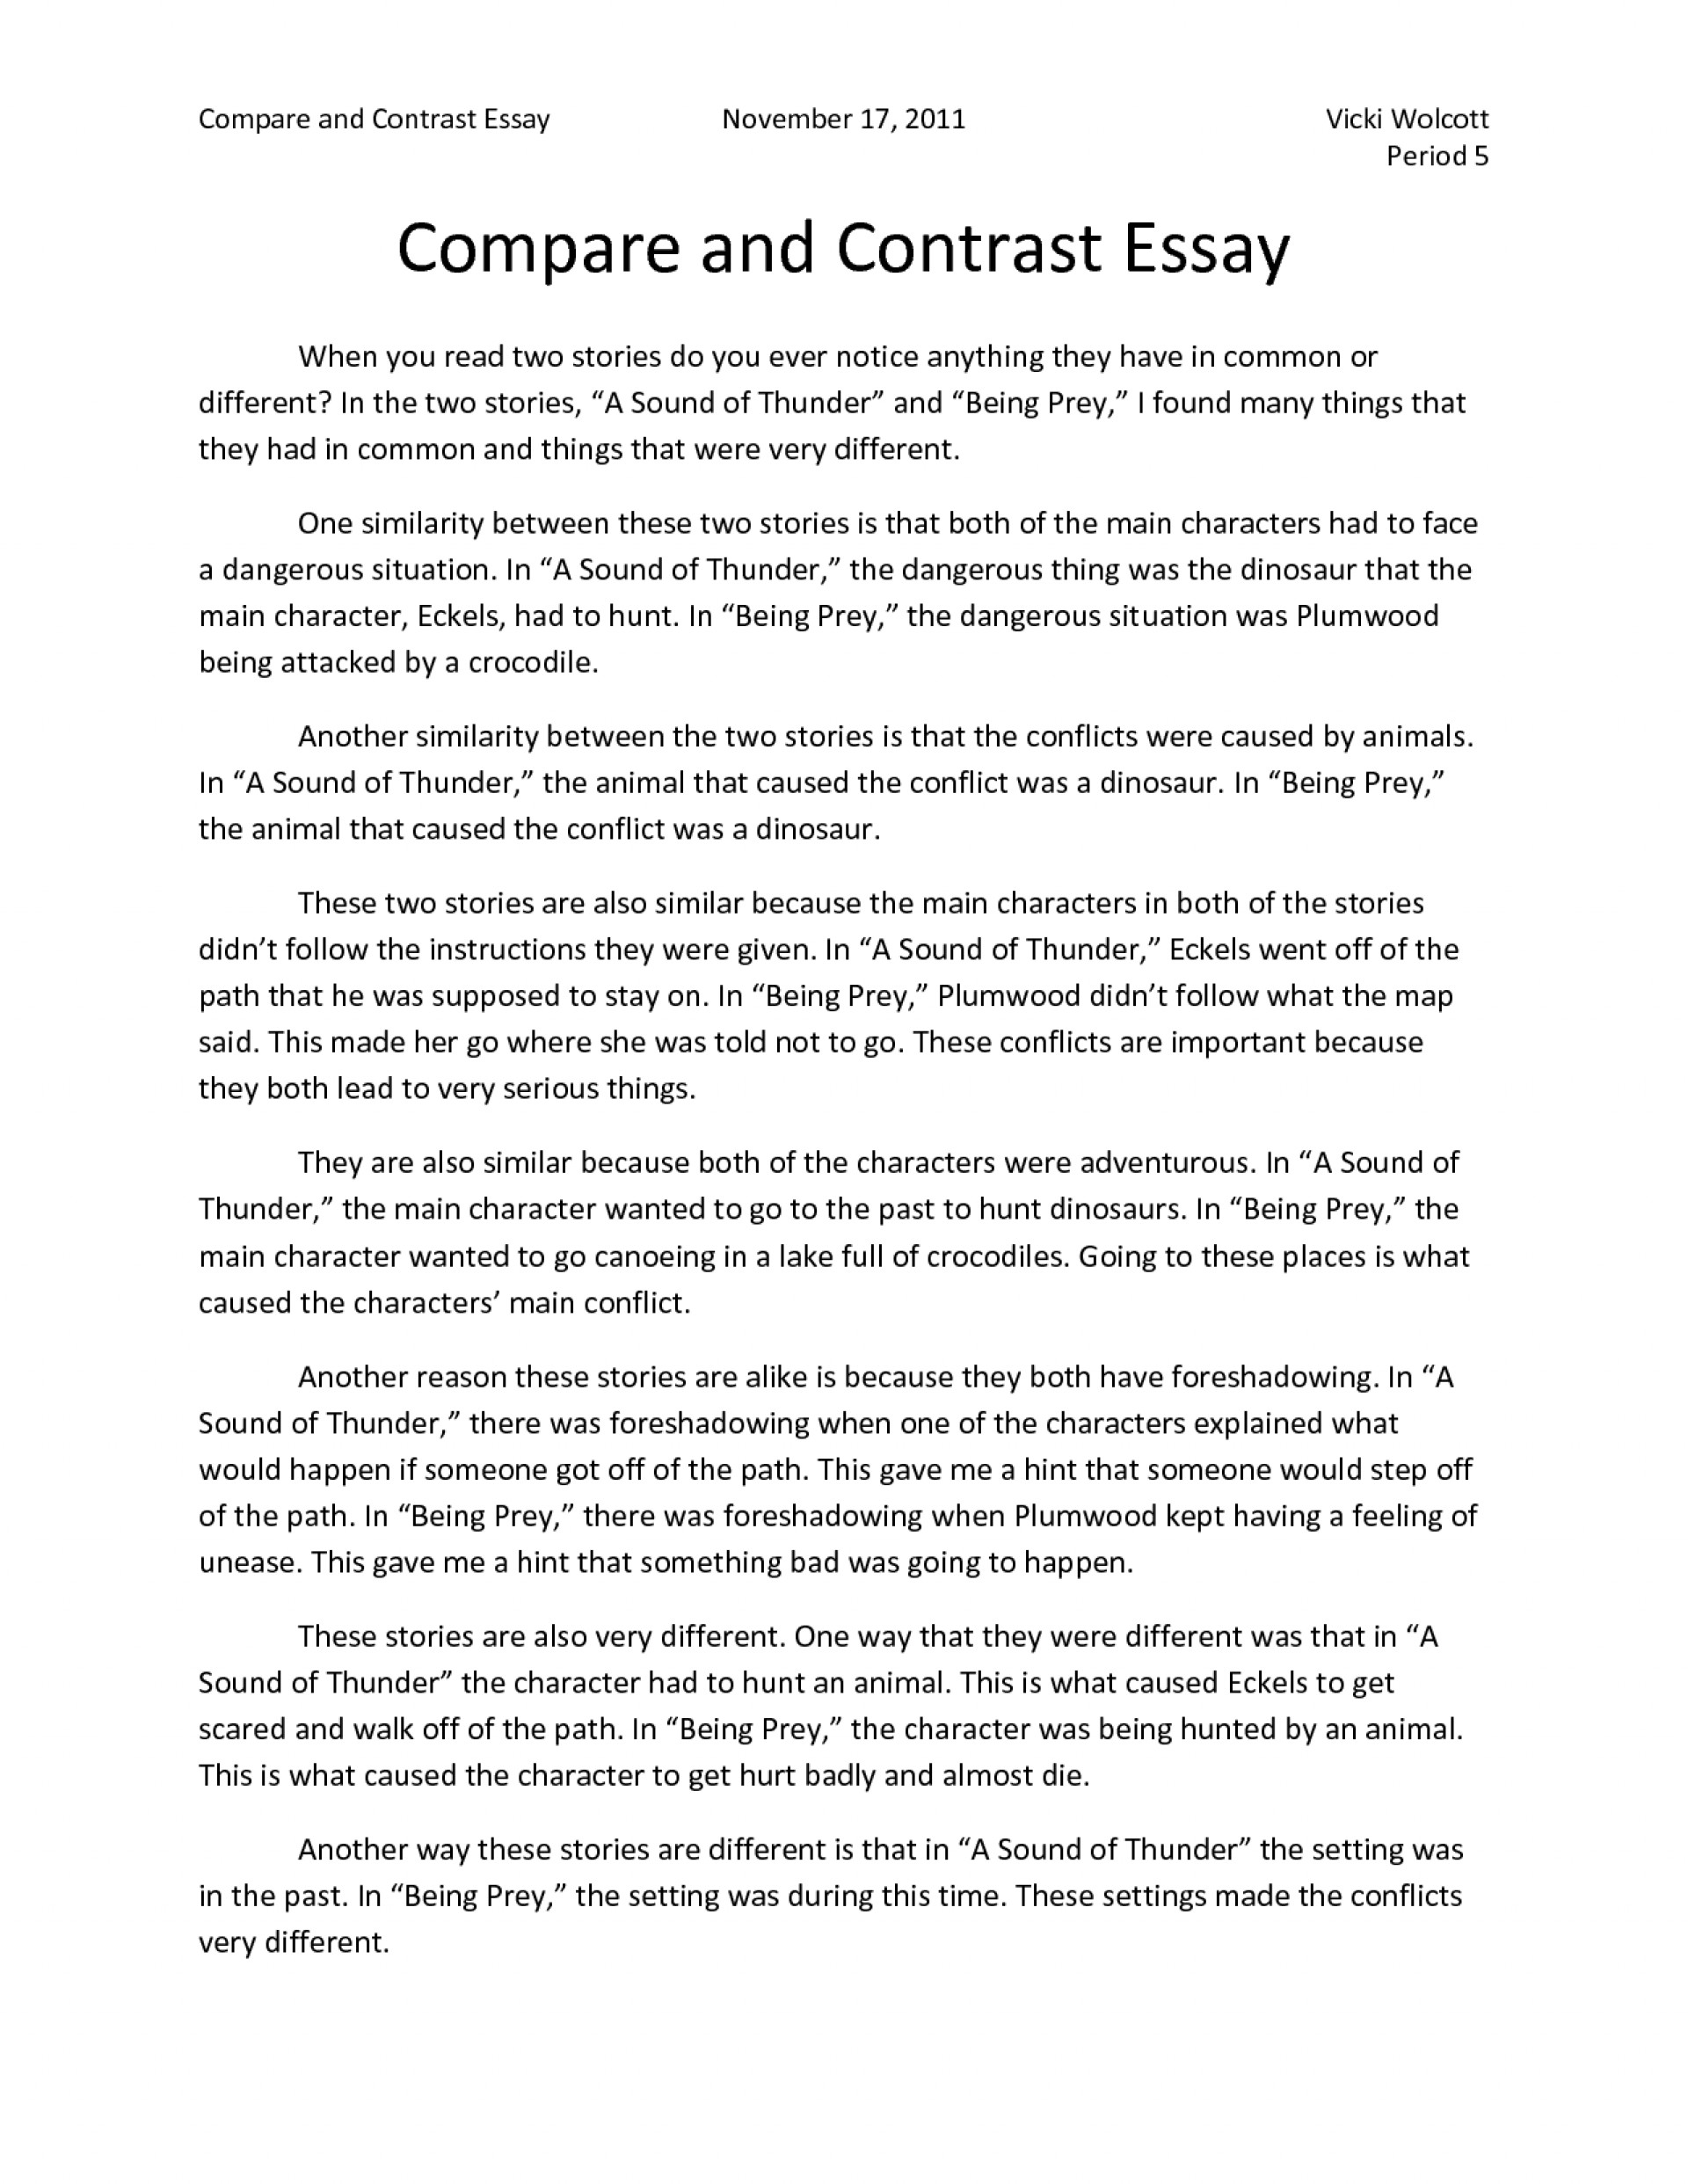 004 Essay Example Compare And Contrast Gallery Template Drawing Art Throughout College Examples Introduction Question Scholarship Free Edexcel Conclusion Frightening Prompts 5th Grade Rubric Ideas 12th 1920